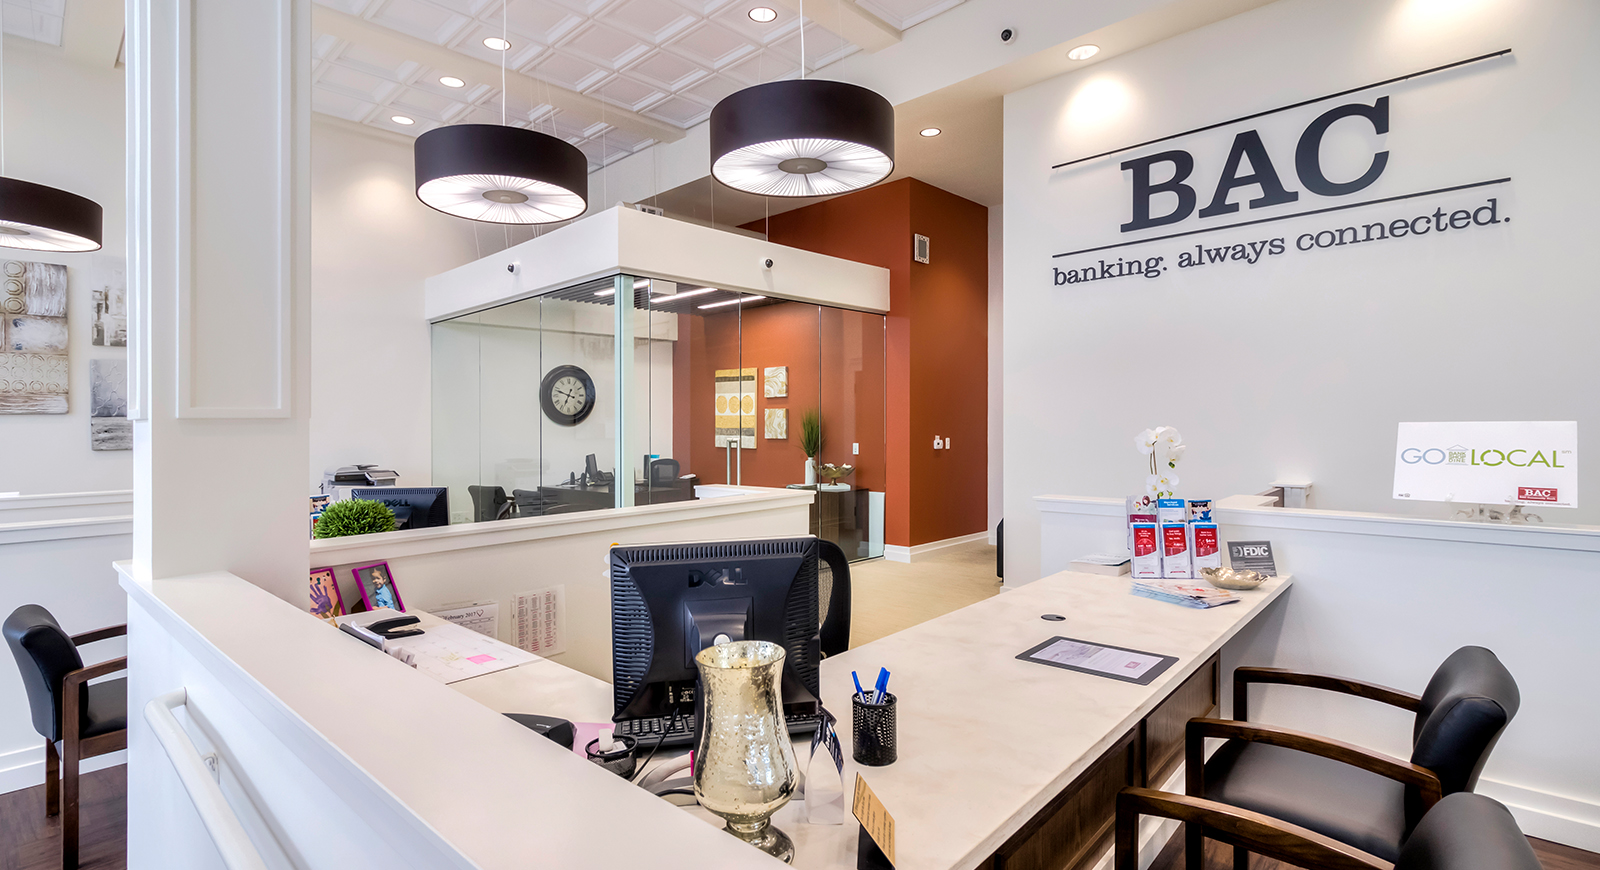 BAC Community Bank Renovation Remodeling General Contractor Tracy